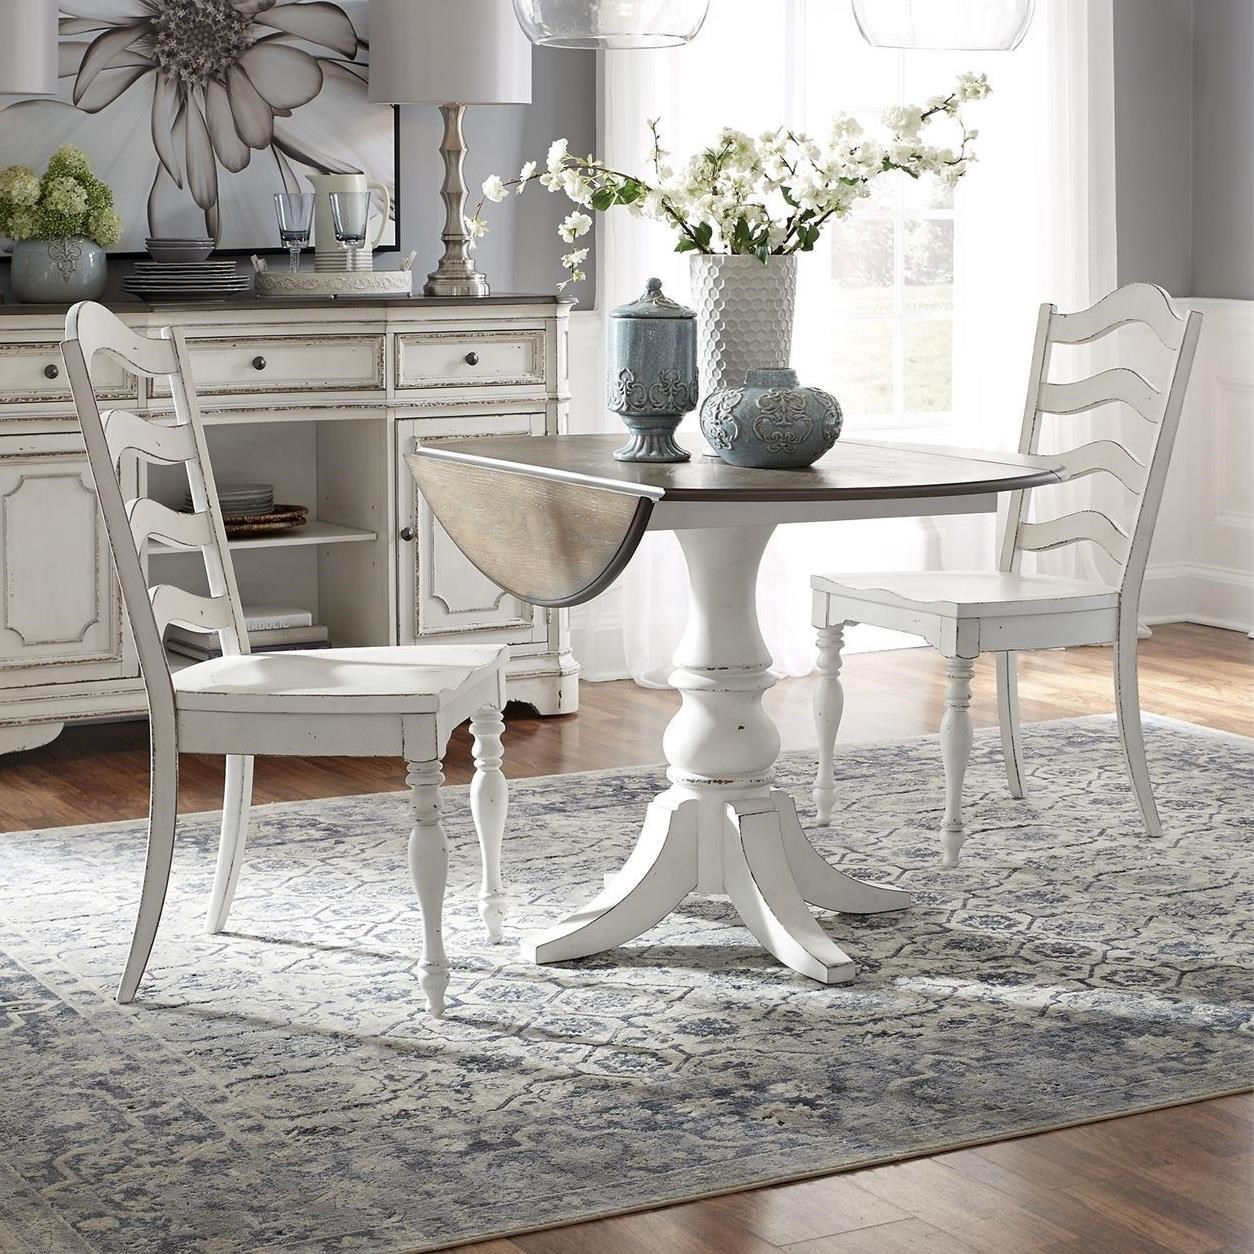 Magnolia Manor 3 Piece Table and Chair Set by Sarah Randolph Designs at Virginia Furniture Market